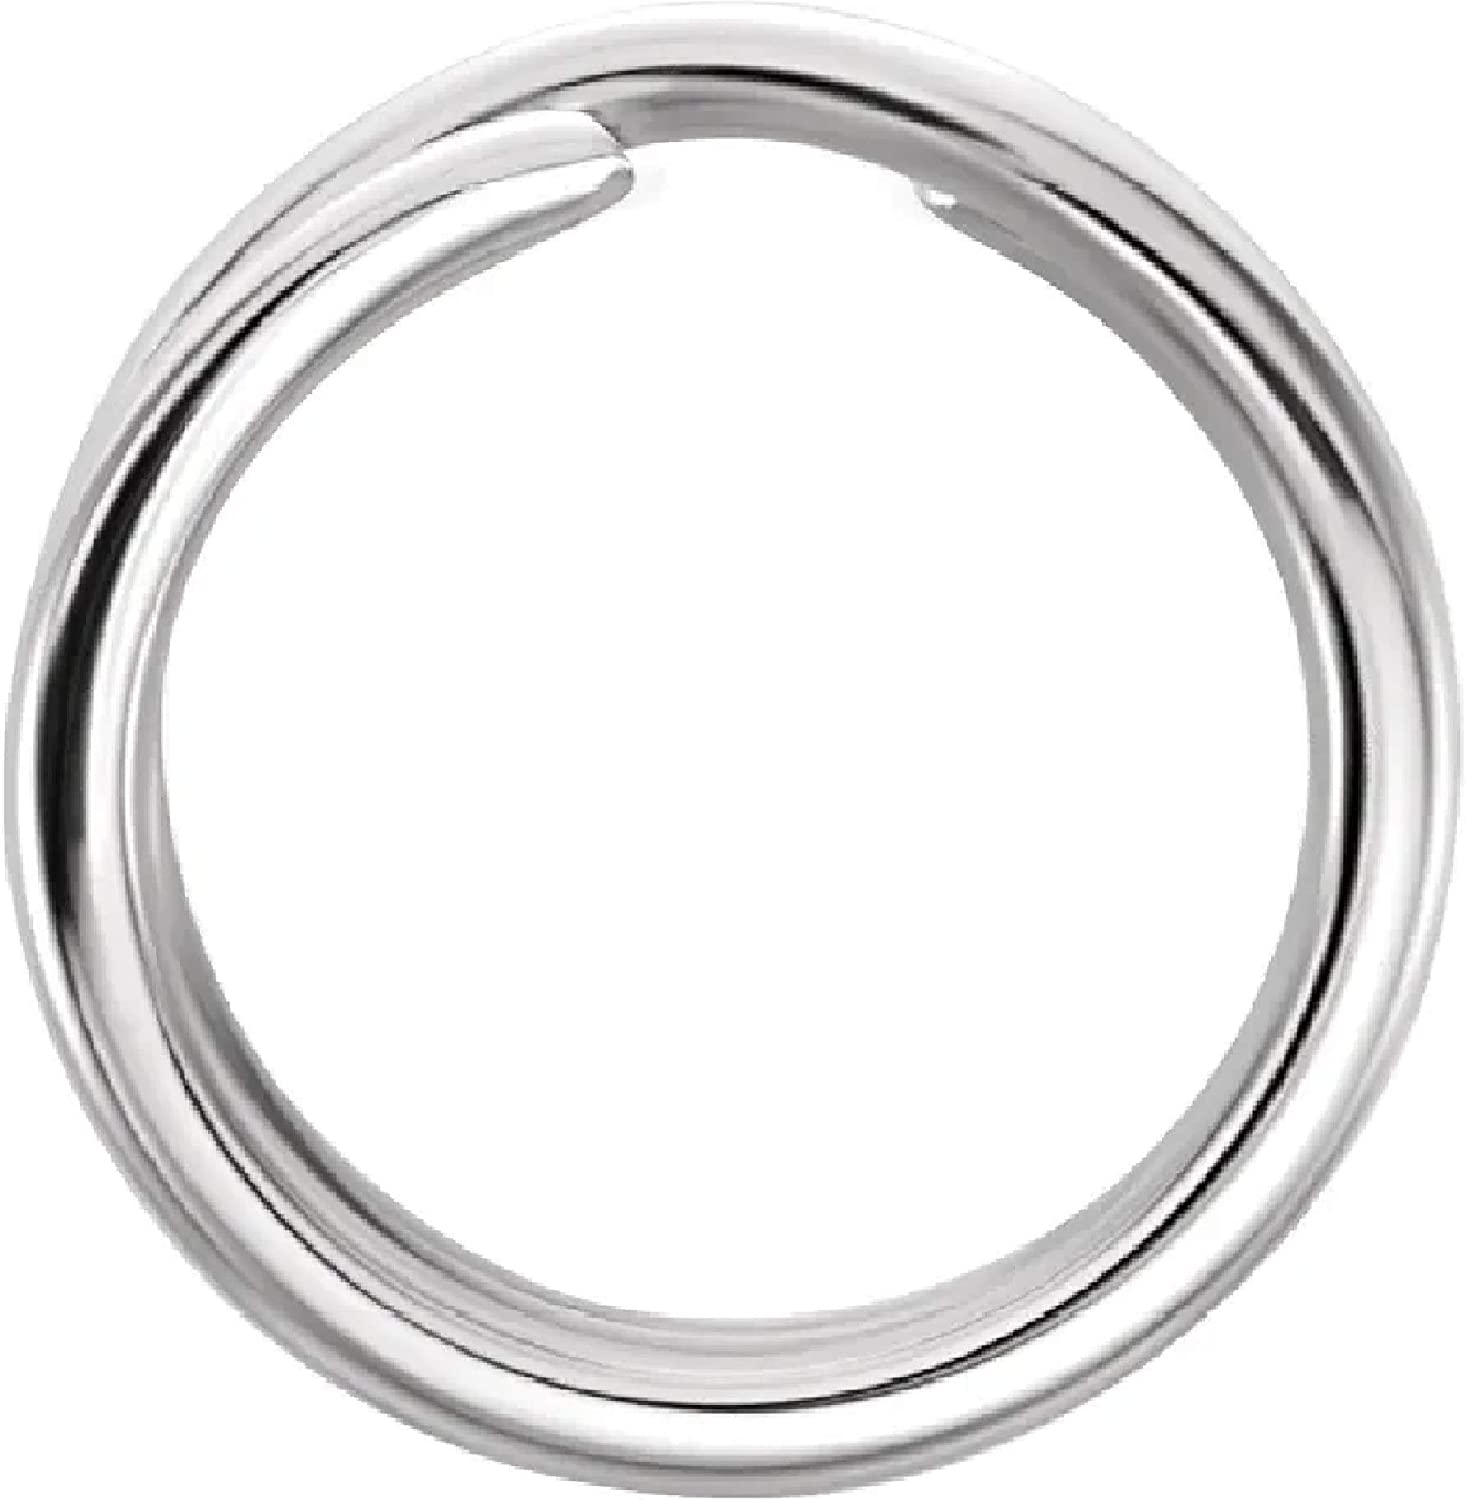 14K or Silver 5mm-8mm Round Oval Manufacturer regenerated product Rings Jacksonville Mall Ring Jump Charm Key Split